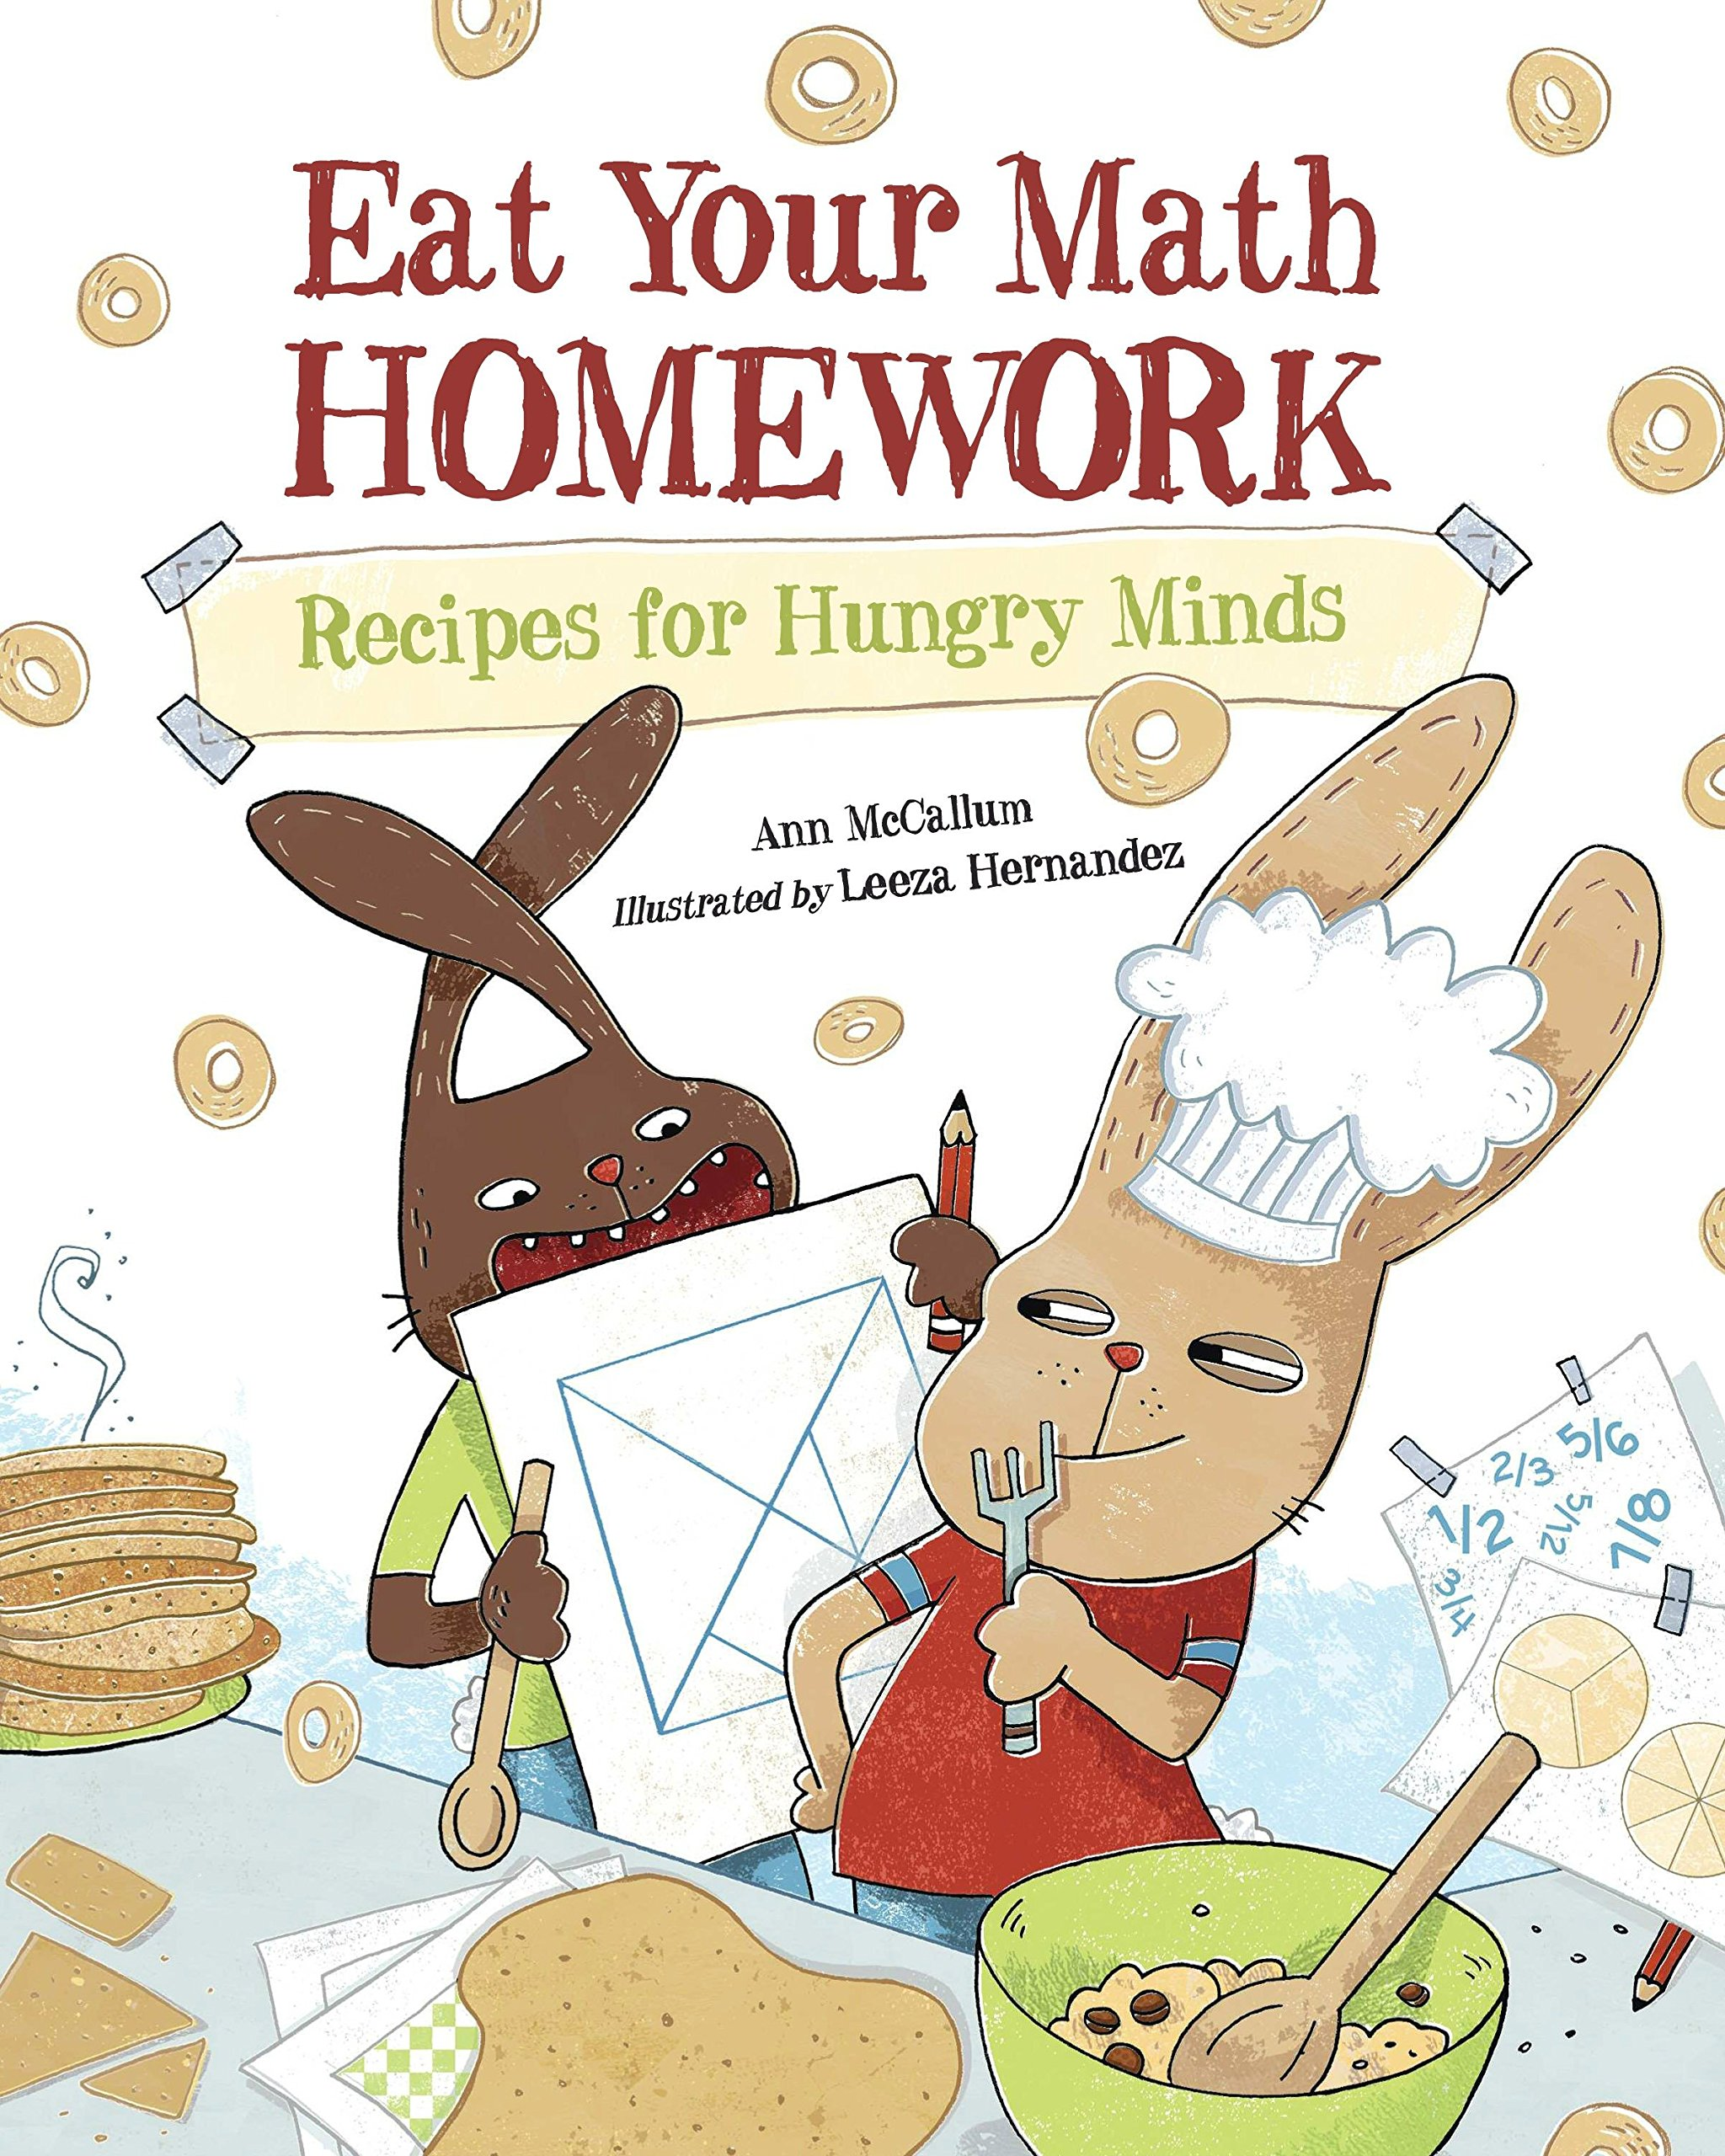 Eat Your Math Homework: Recipes for Hungry Minds (Eat Your Homework):  McCallum, Ann, Hernandez, Leeza: 9781570917806: Amazon.com: Books